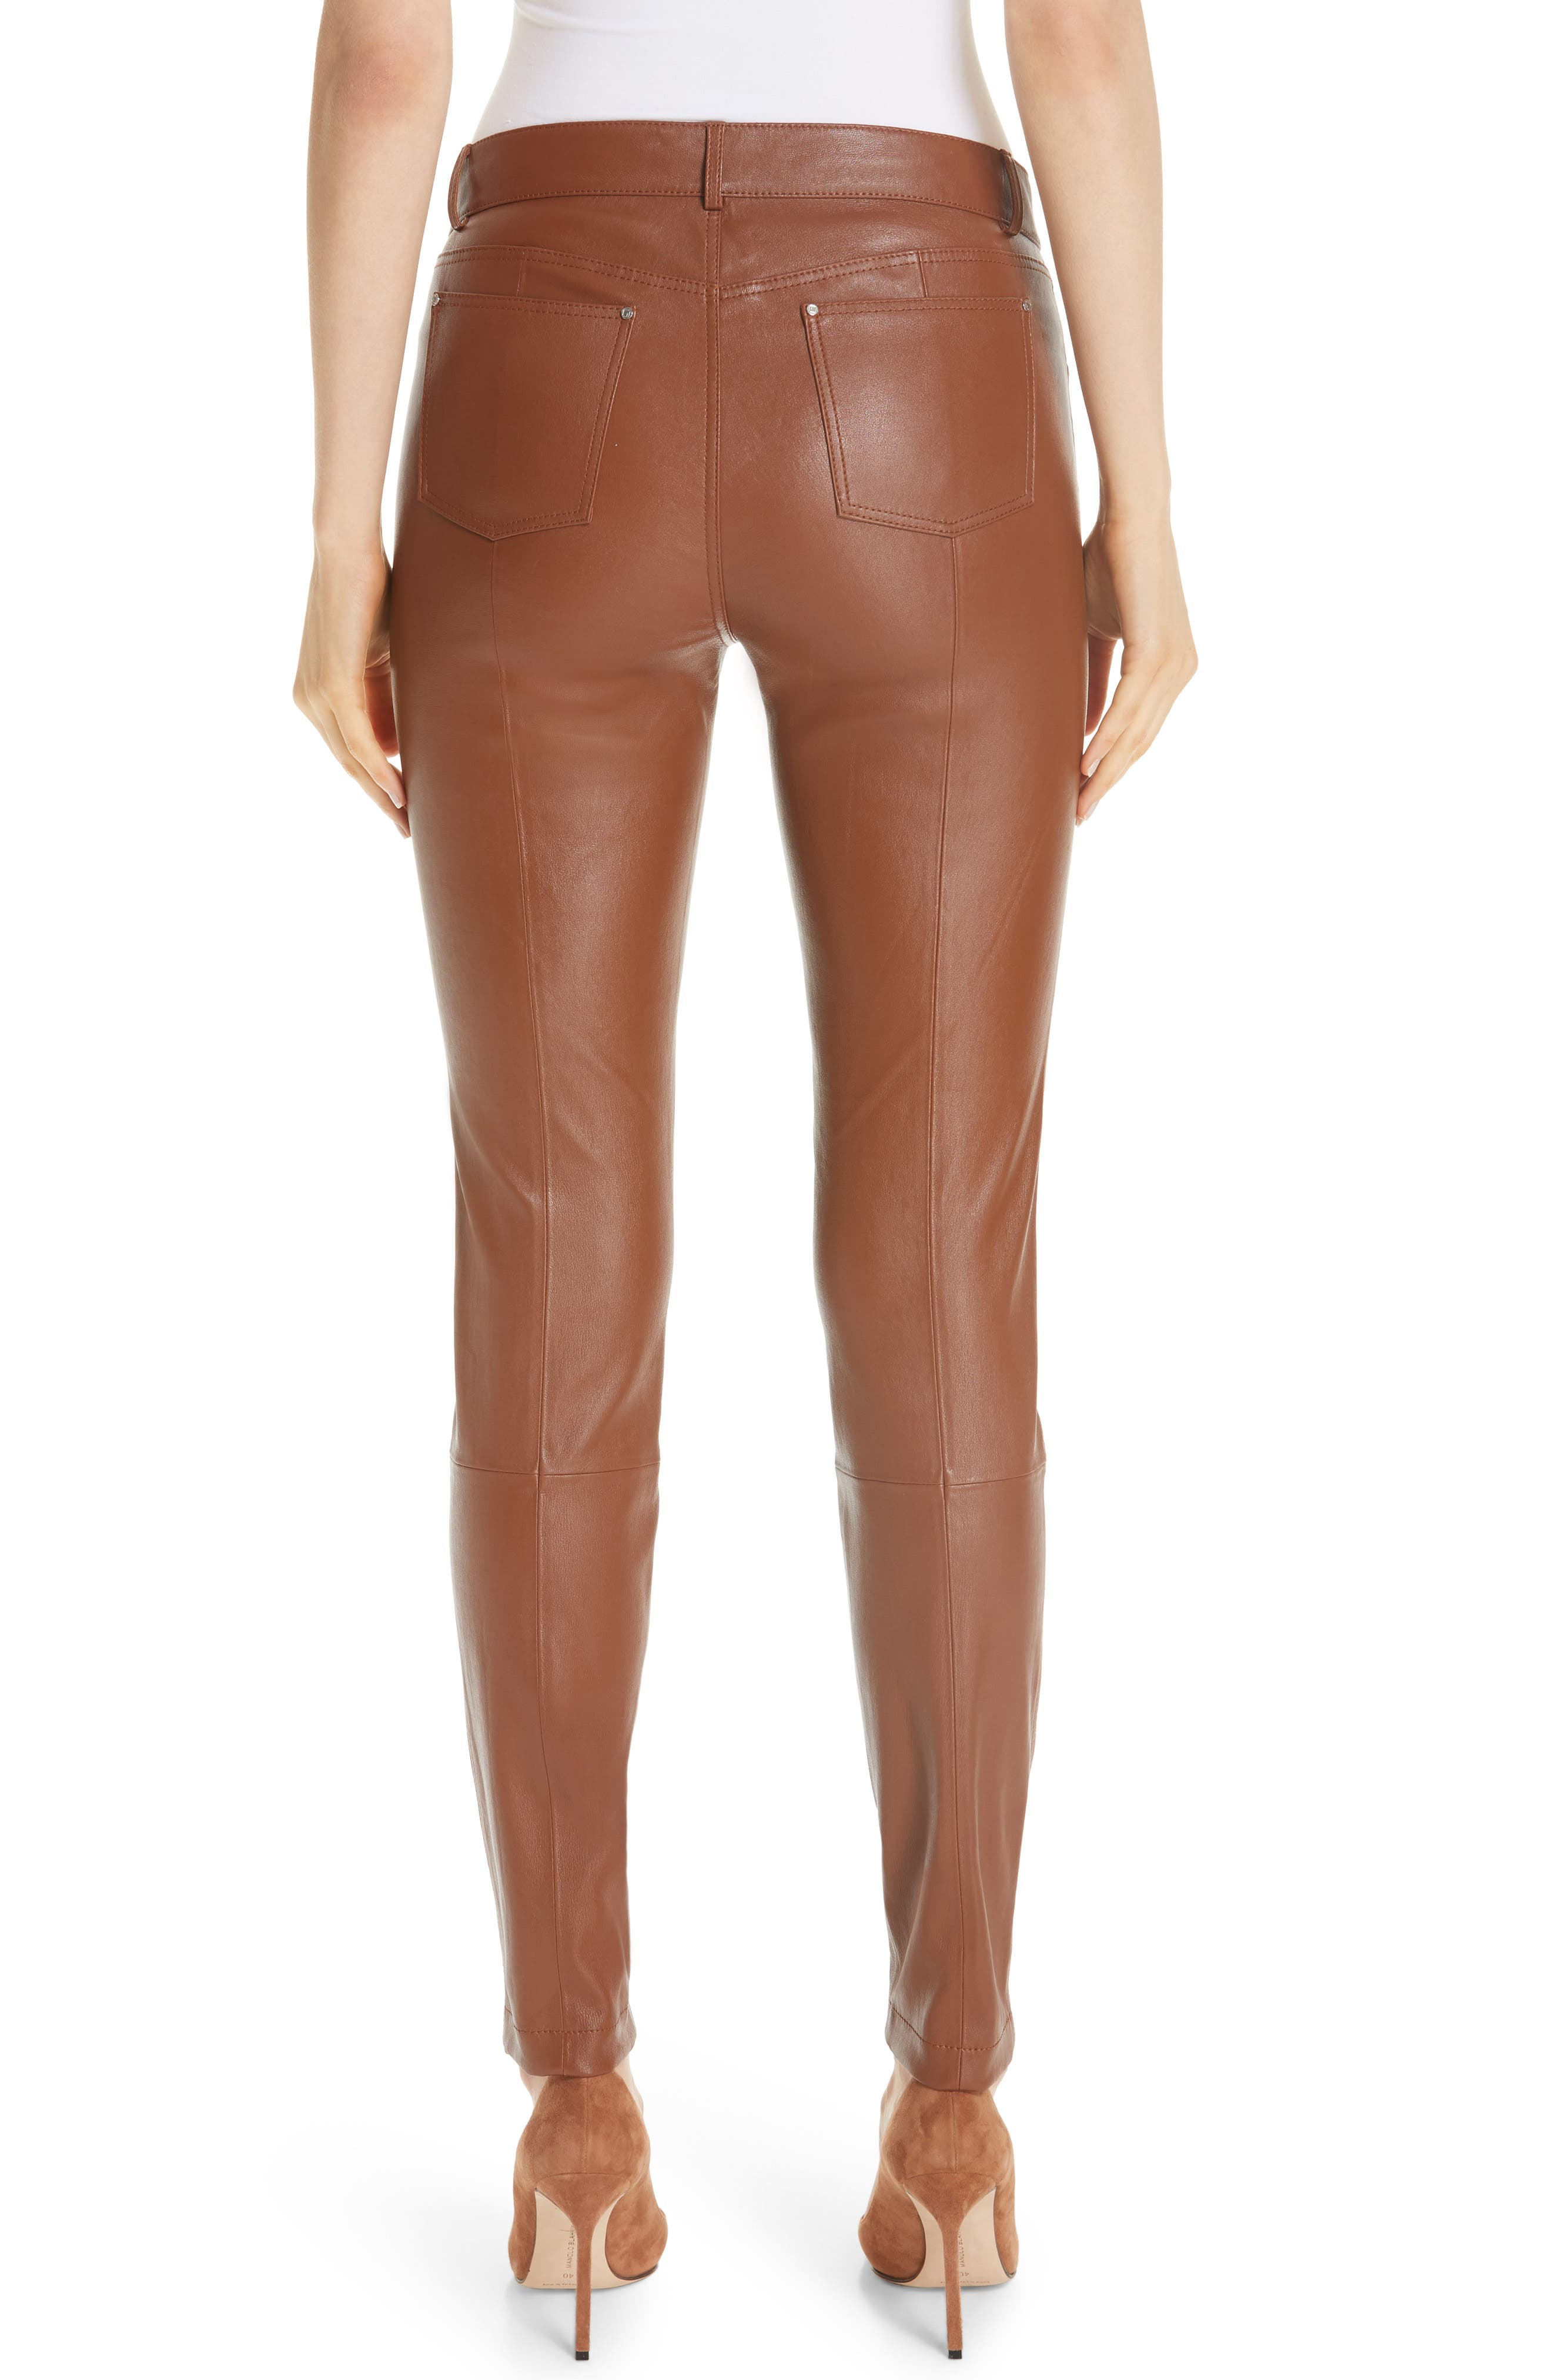 Mercer Nappa Leather Pants,                             Alternate thumbnail 2, color,                             VICUNA